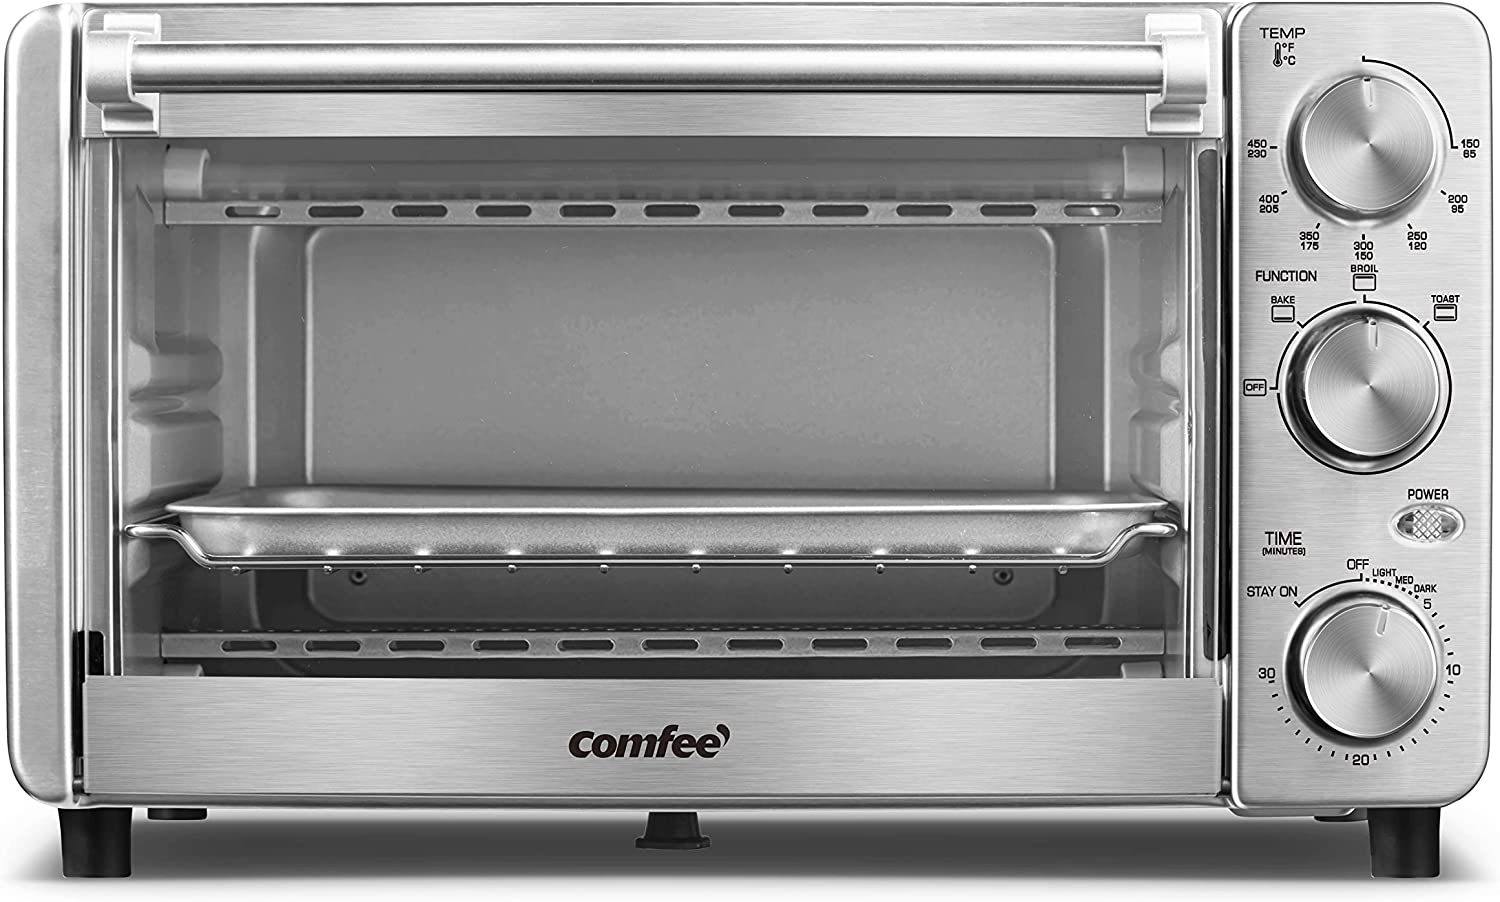 COMFEE' Toaster Oven, 4 Slice, 12L, Multi-function Stainless Steel Finish with Timer-Toast-Bake-Broil Settings, 1100W, Perfect for Countertop (CFO-BG12(SS)): Home & Kitchen